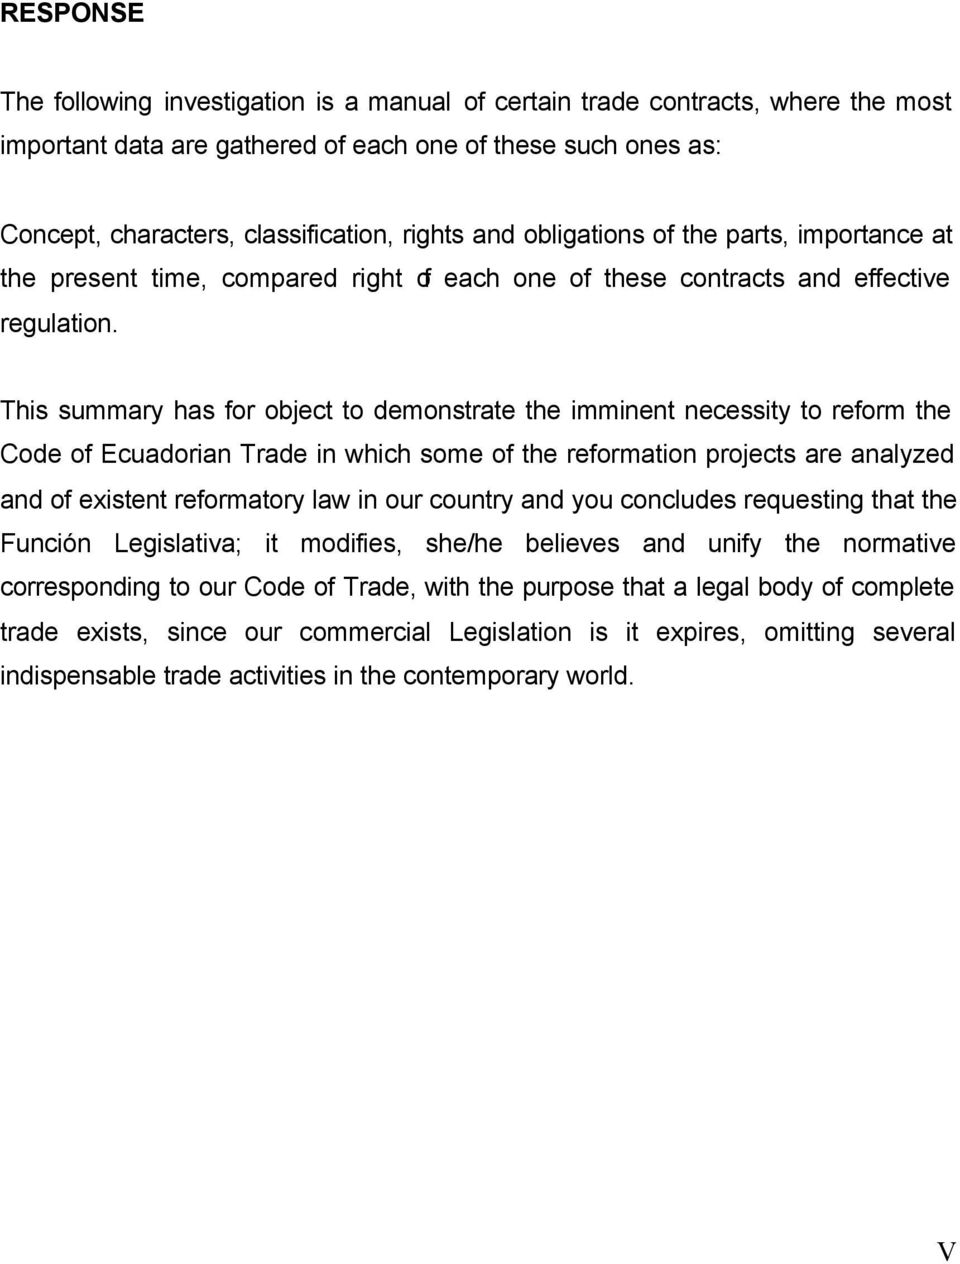 This summary has for object to demonstrate the imminent necessity to reform the Code of Ecuadorian Trade in which some of the reformation projects are analyzed and of existent reformatory law in our